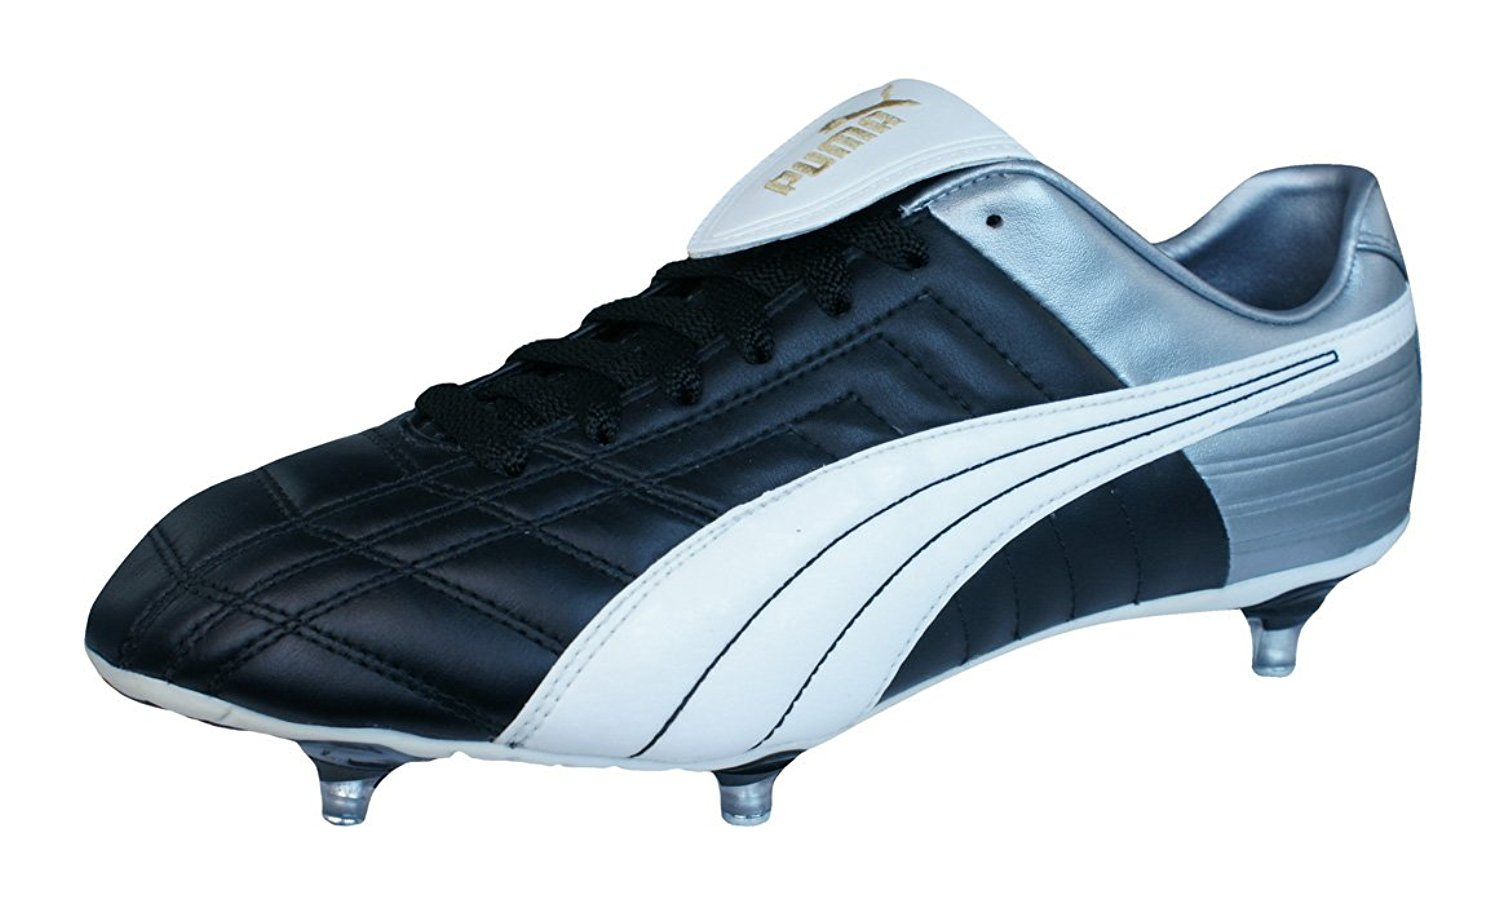 fd78627b4 Buy Puma King XL SG Mens Leather soccer Boots / Cleats - Gold in ...